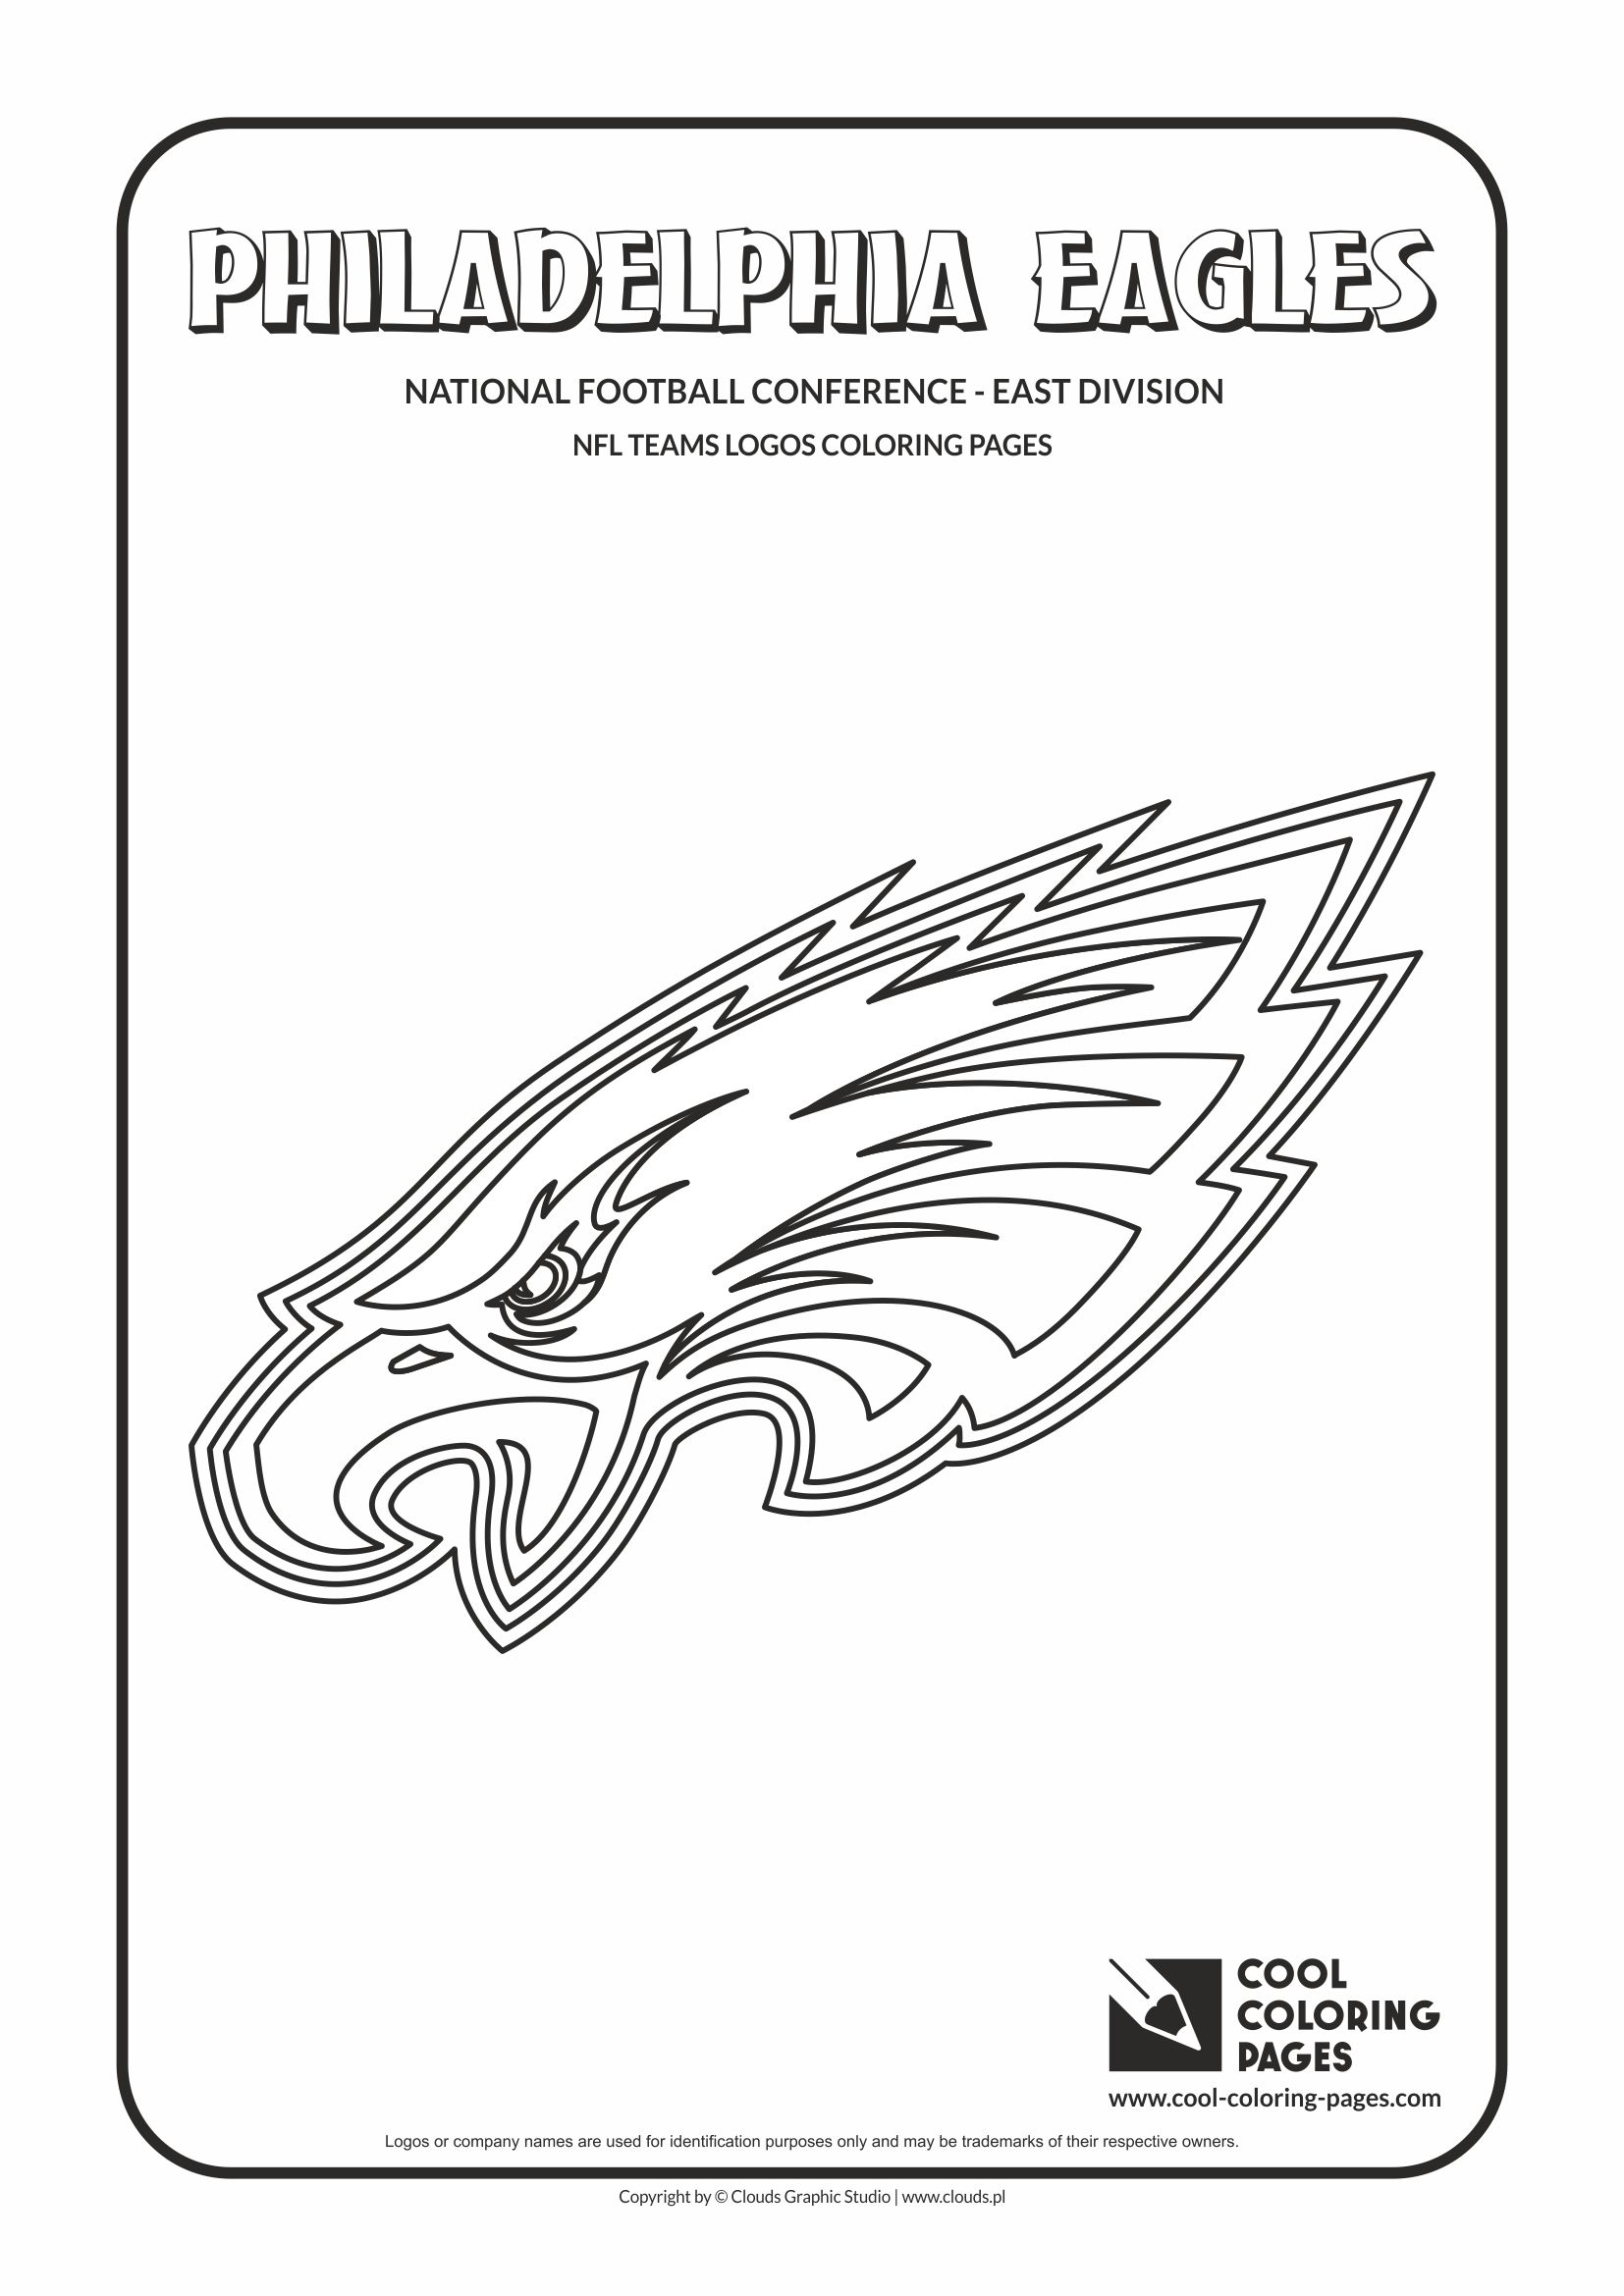 Cool Coloring Pages Philadelphia Eagles Nfl American Football